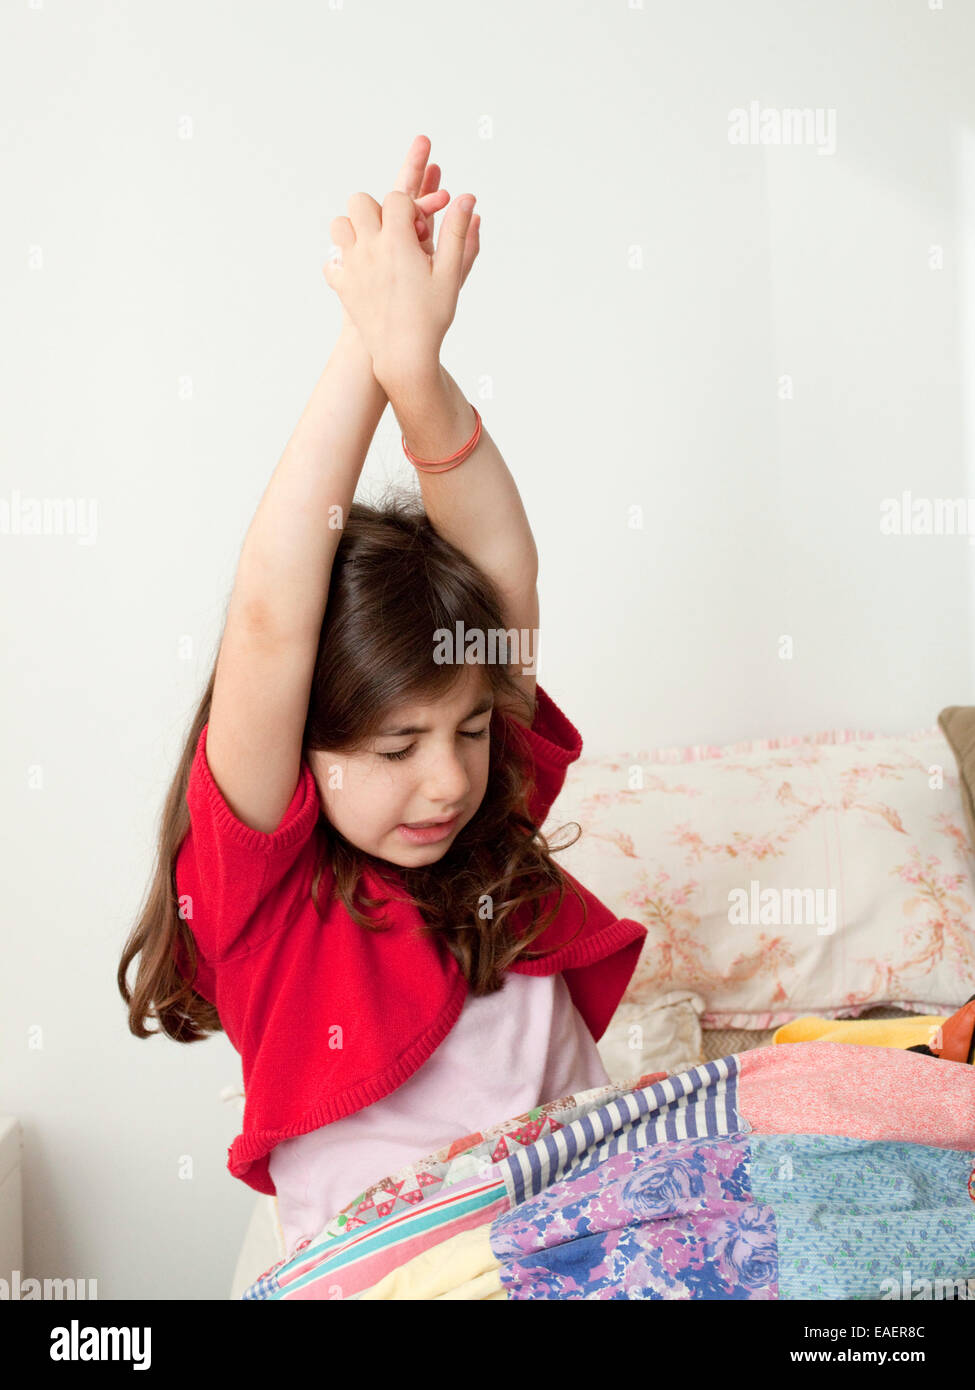 young girl waking up and stretching in bed - Stock Image